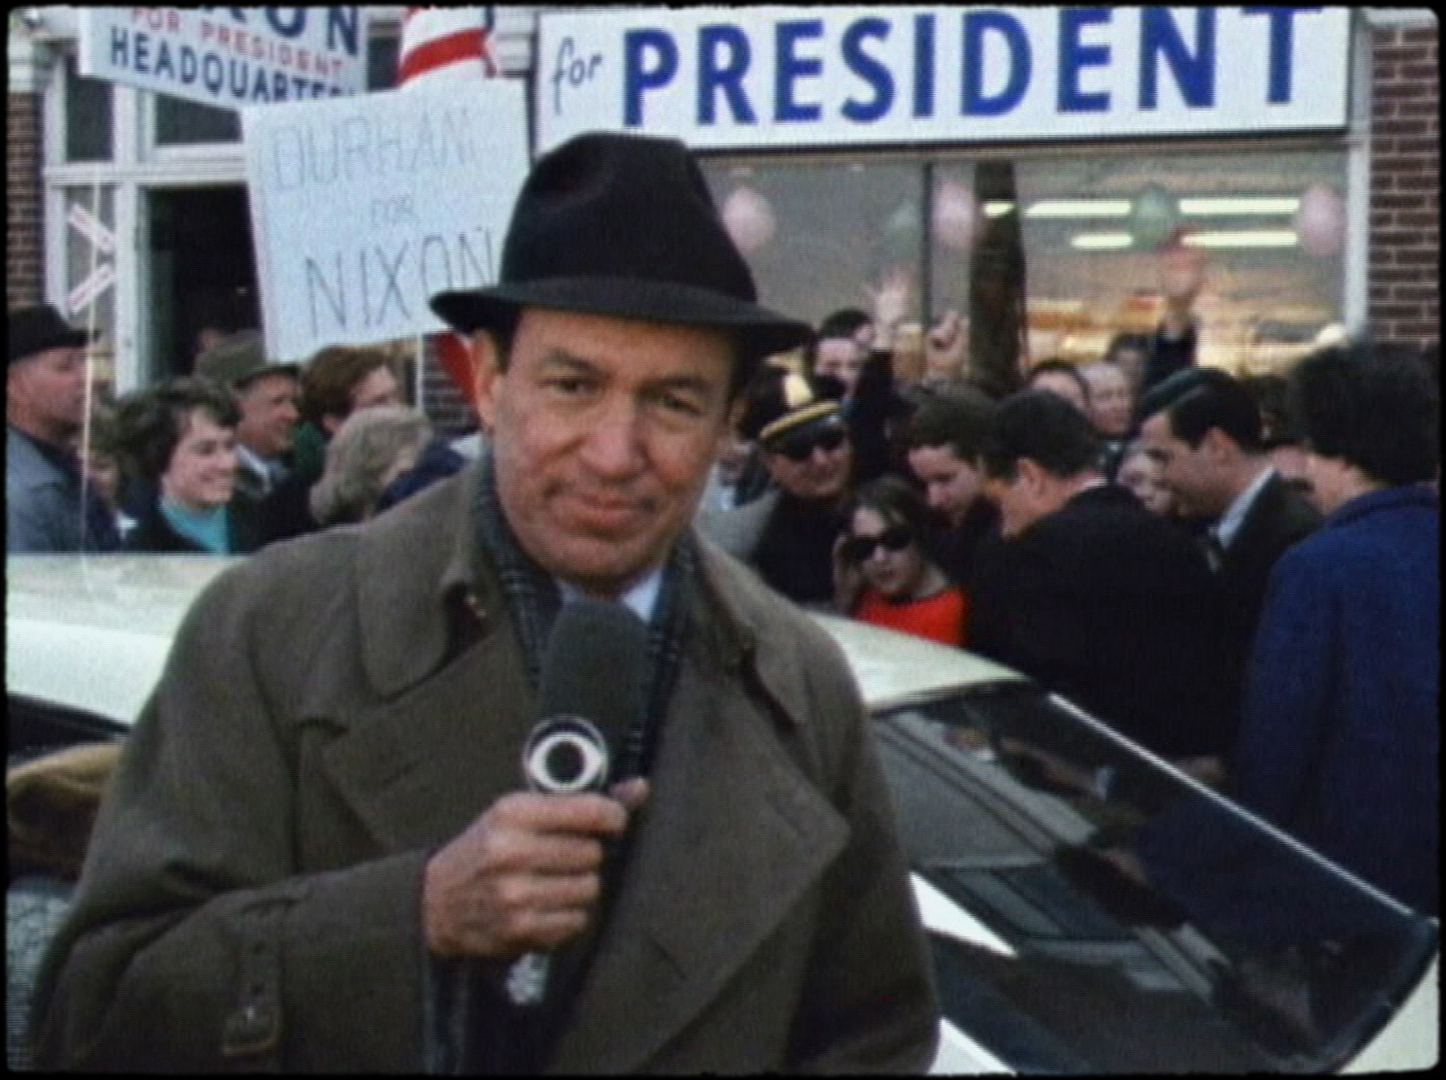 """Newsman Mike Wallace, on the campaign trail, in a scene from the documentary """"Mike Wallace Is Here."""" (Photo courtesy of Magnolia Pictures.)"""